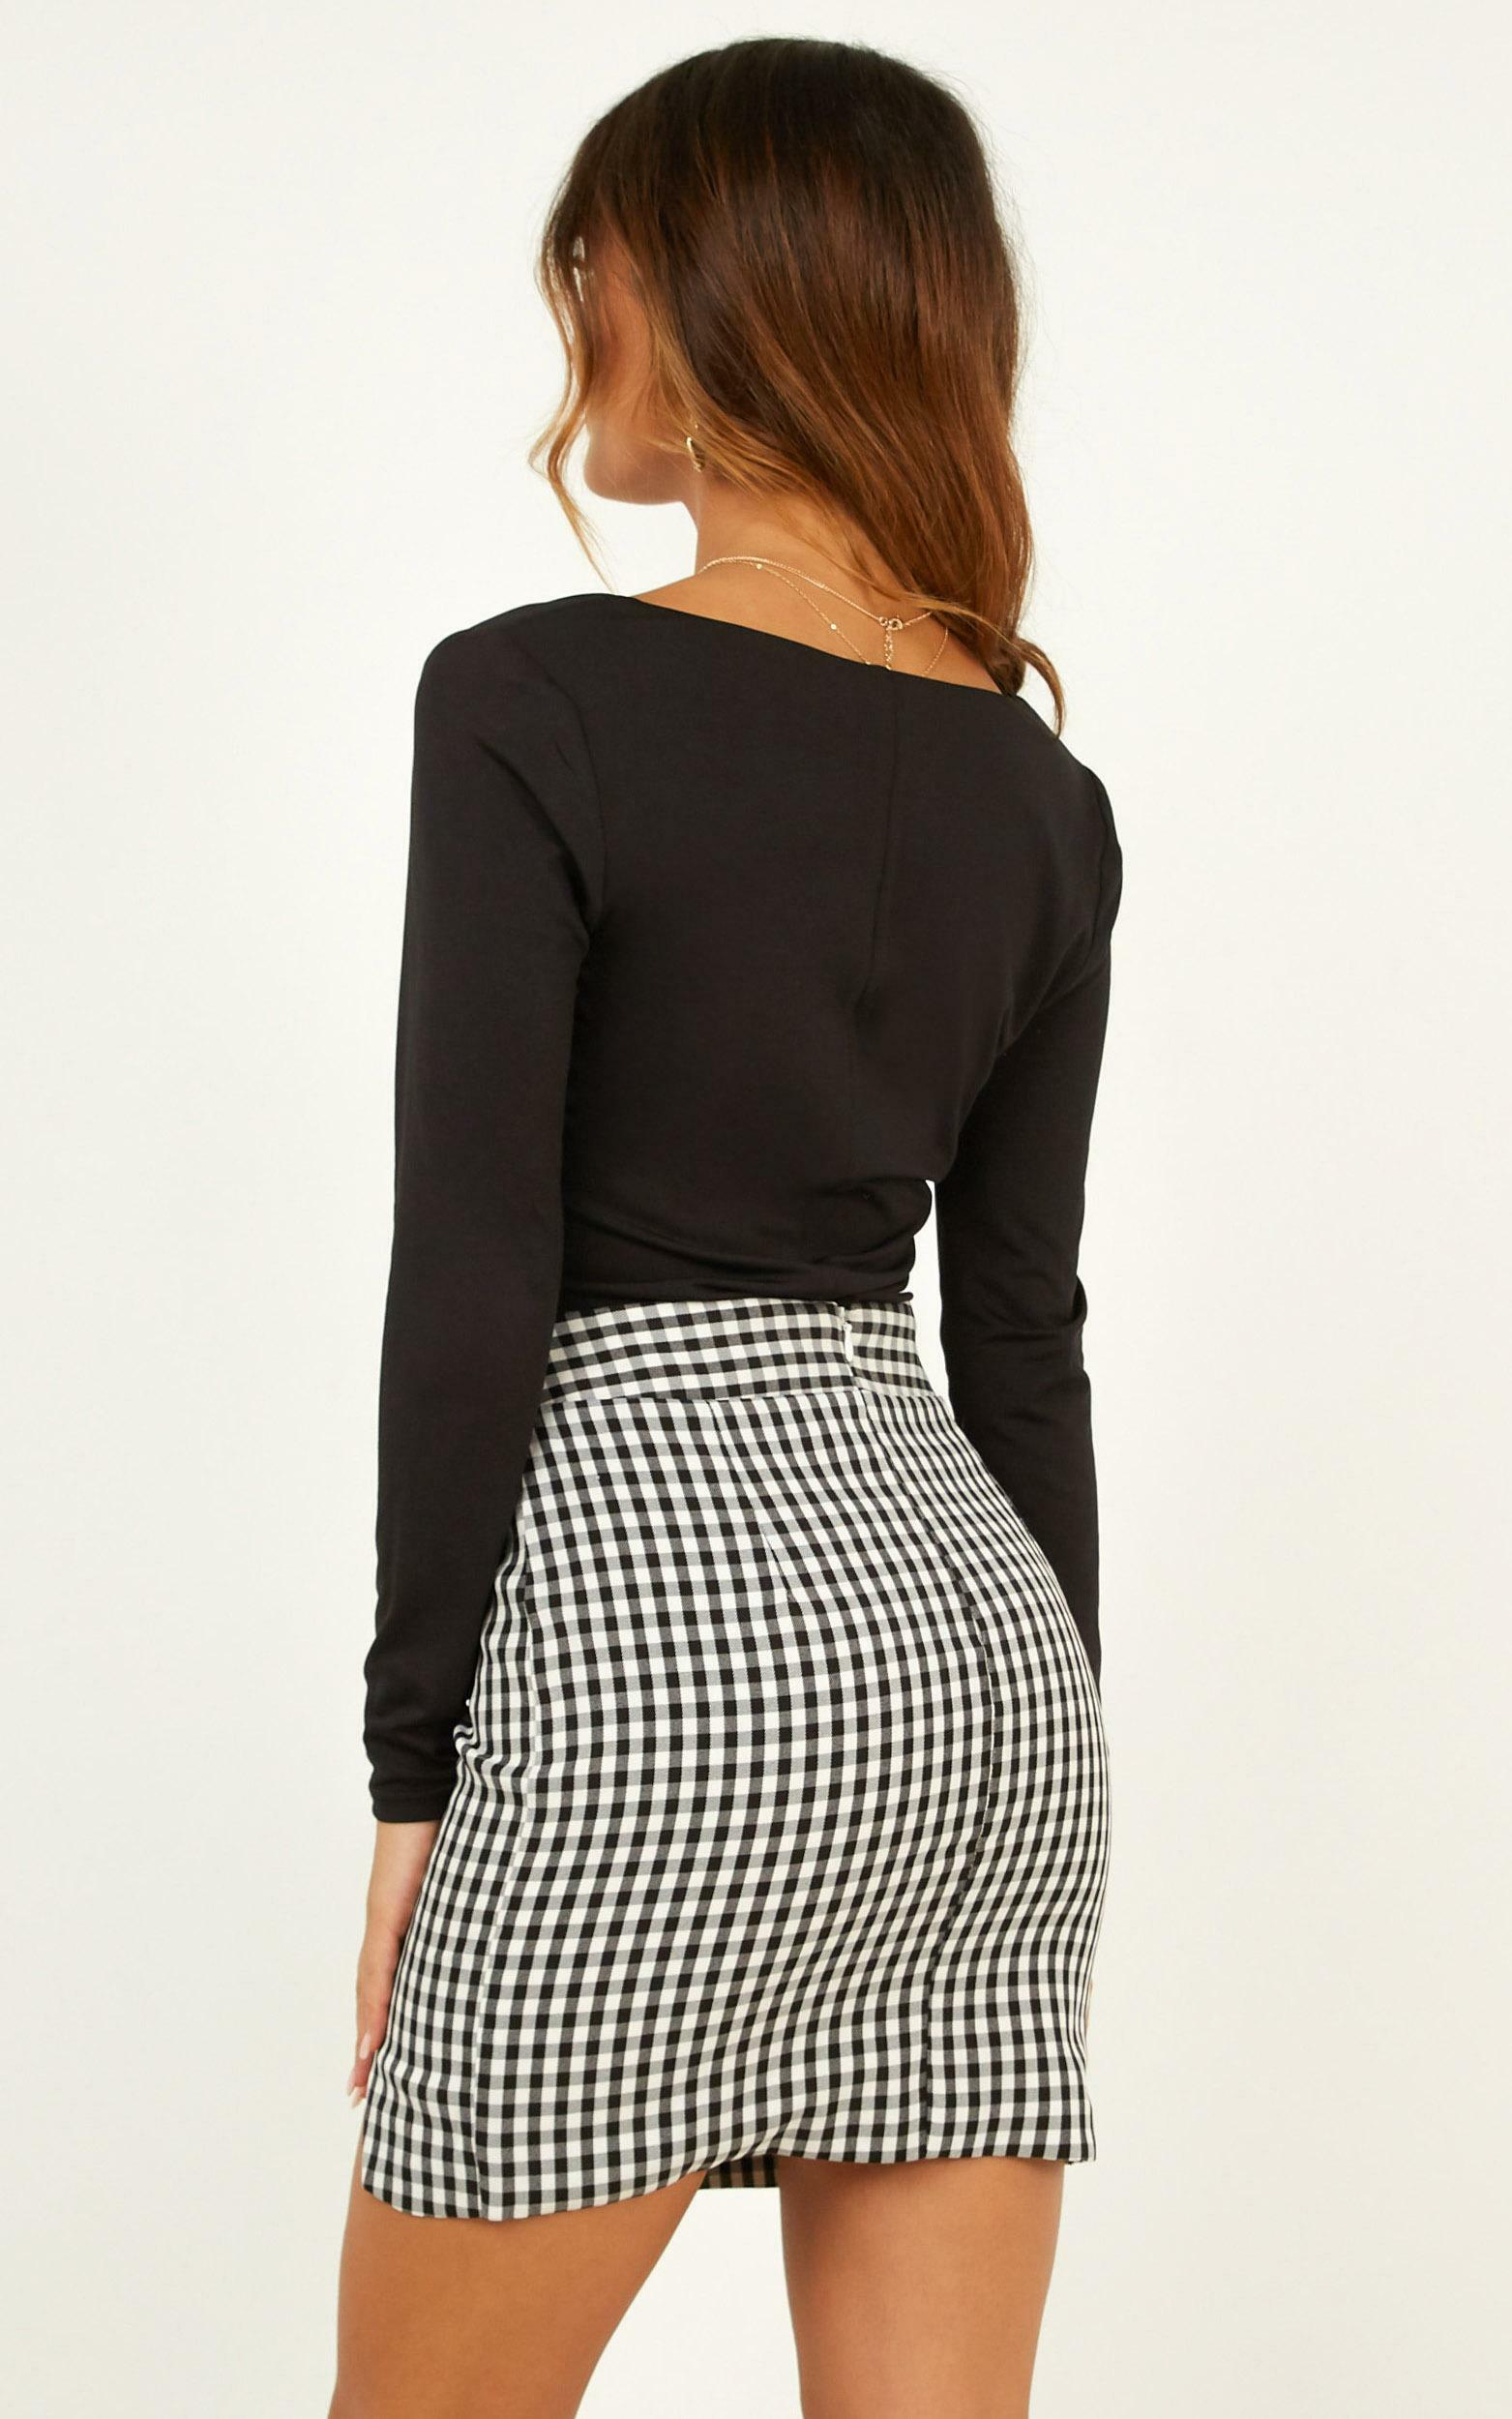 Cancelled Plans Skirt In Black Check - 16 (XXL), BLK1, hi-res image number null